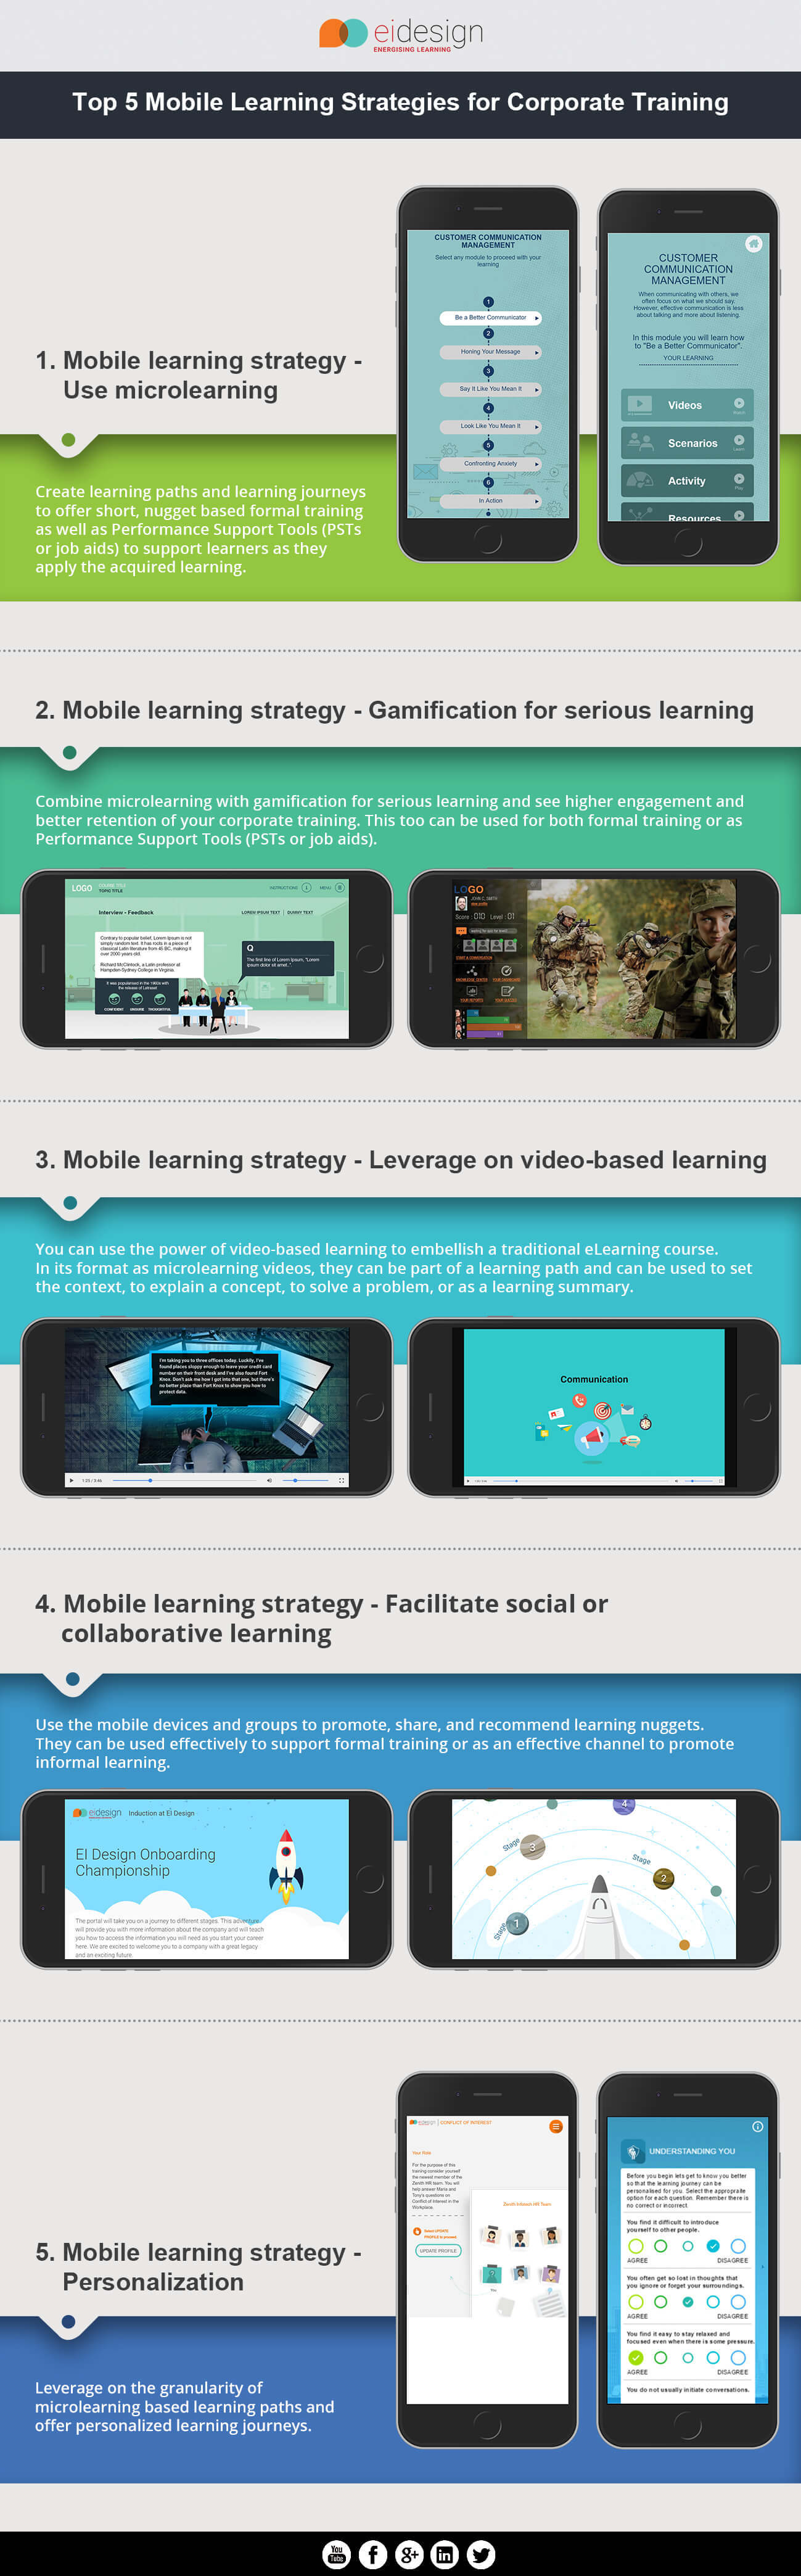 Top 5 Mobile Learning Strategies For Corporate Training Infographic